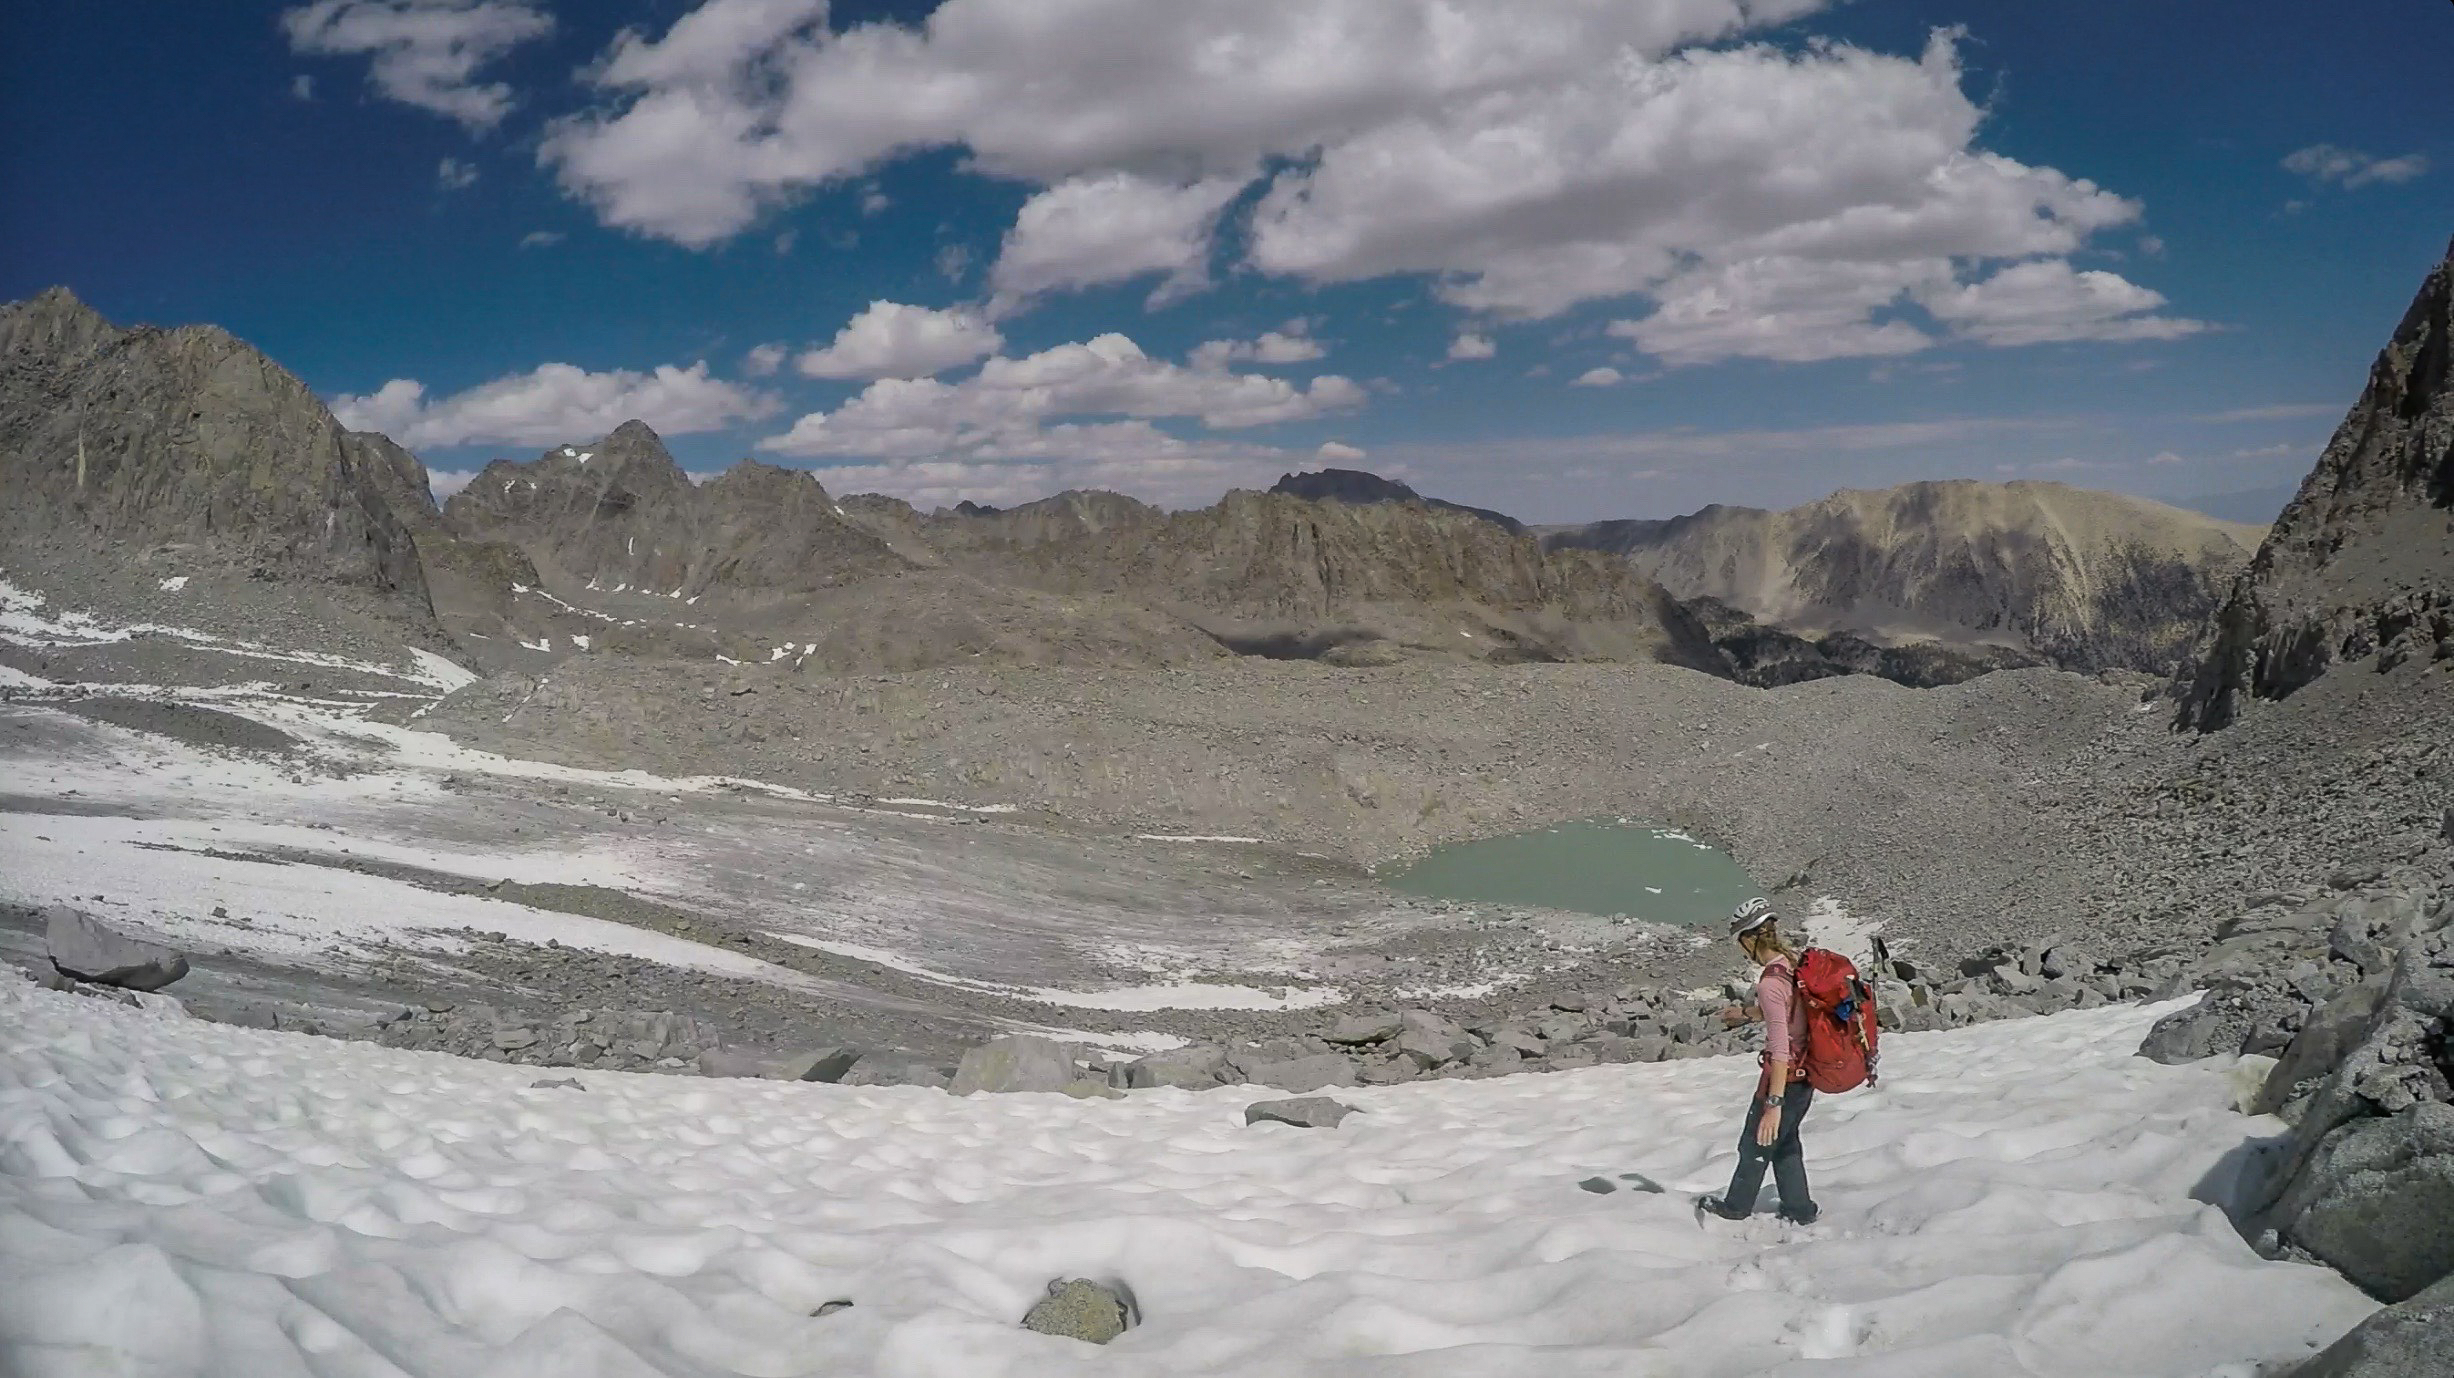 Melanie descending the Palisade Glacier in 2016, figuring out just how useful crampons would be...